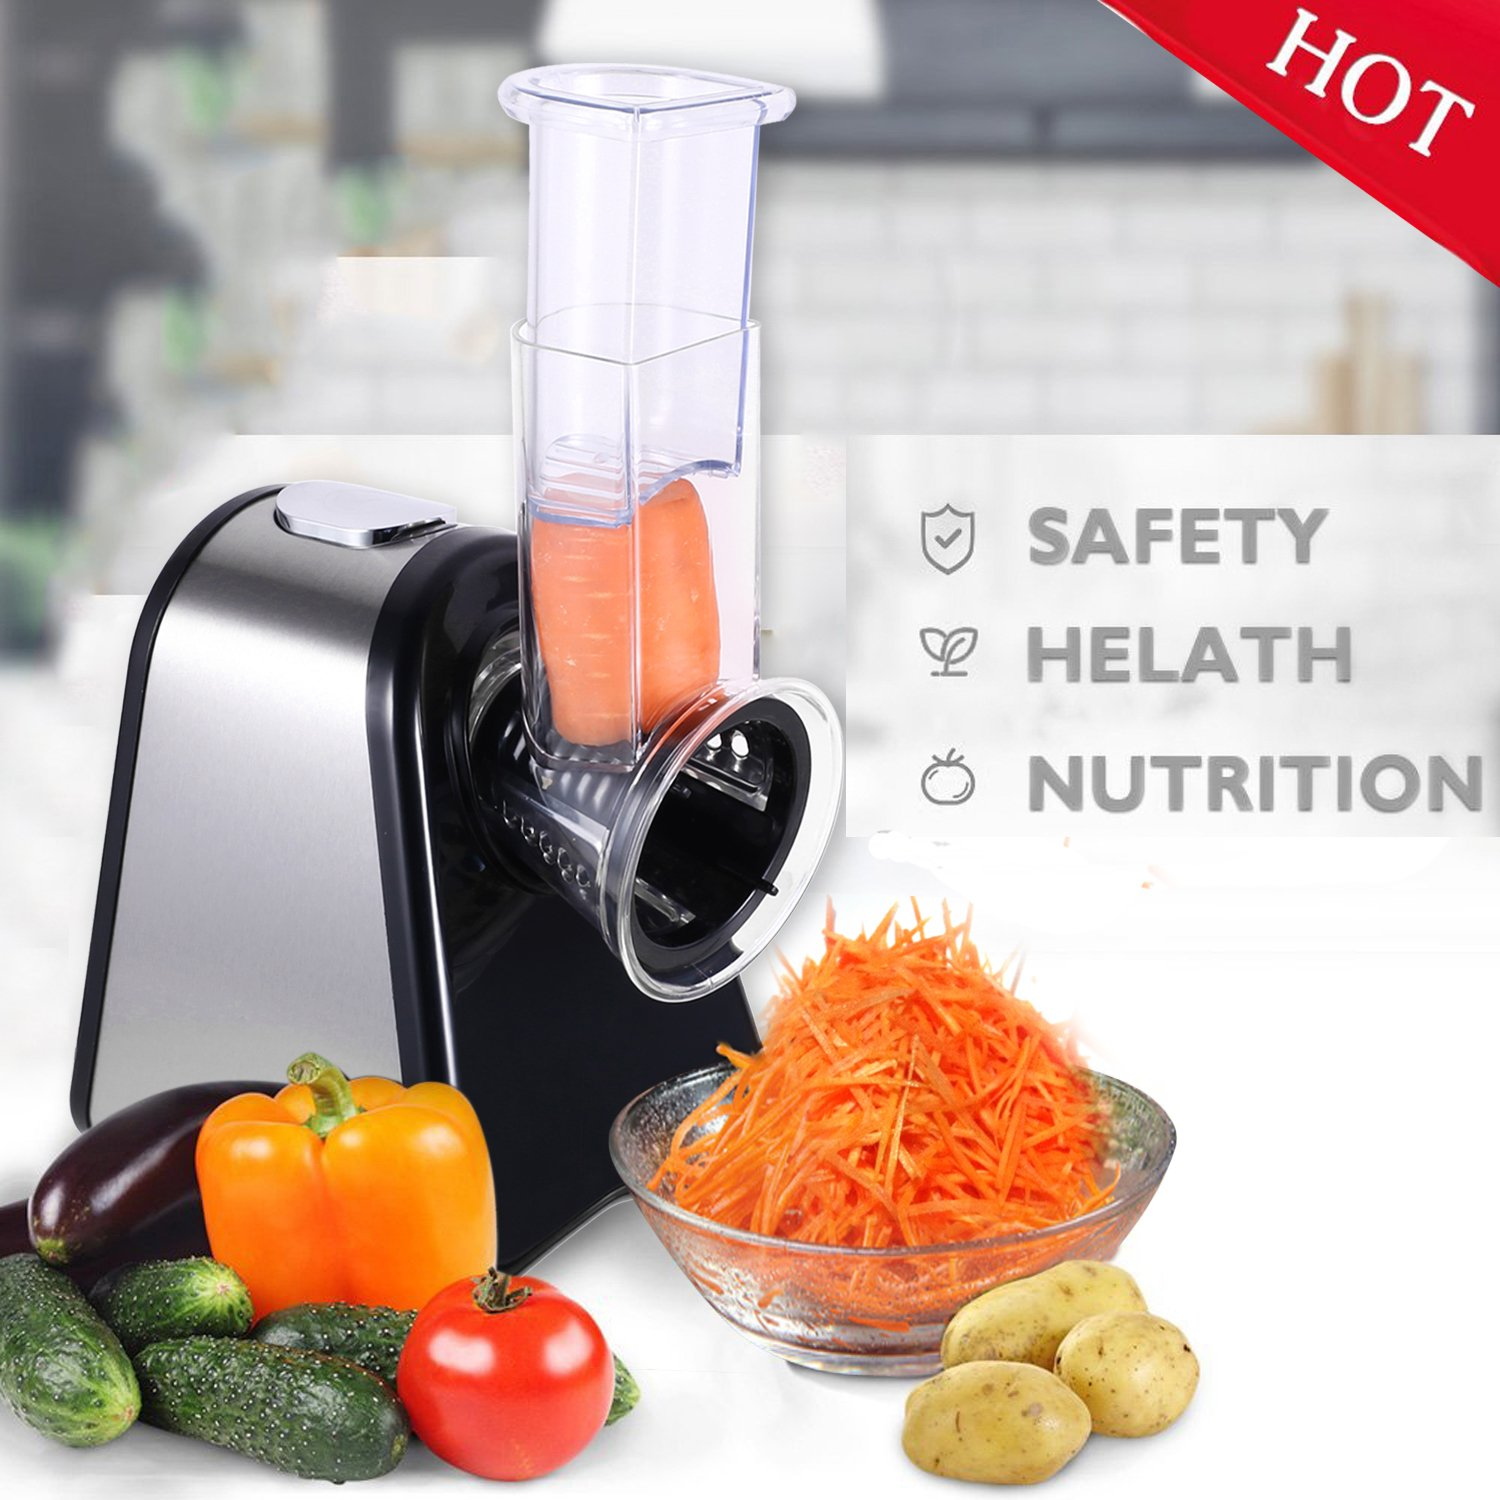 Electric Vegetable Slicer, Professional Electric Slicer/Shredder with One-Touch Control and 5 Free Attachments for Fruits, Vegetables, and Cheeses (Slicer Machine)